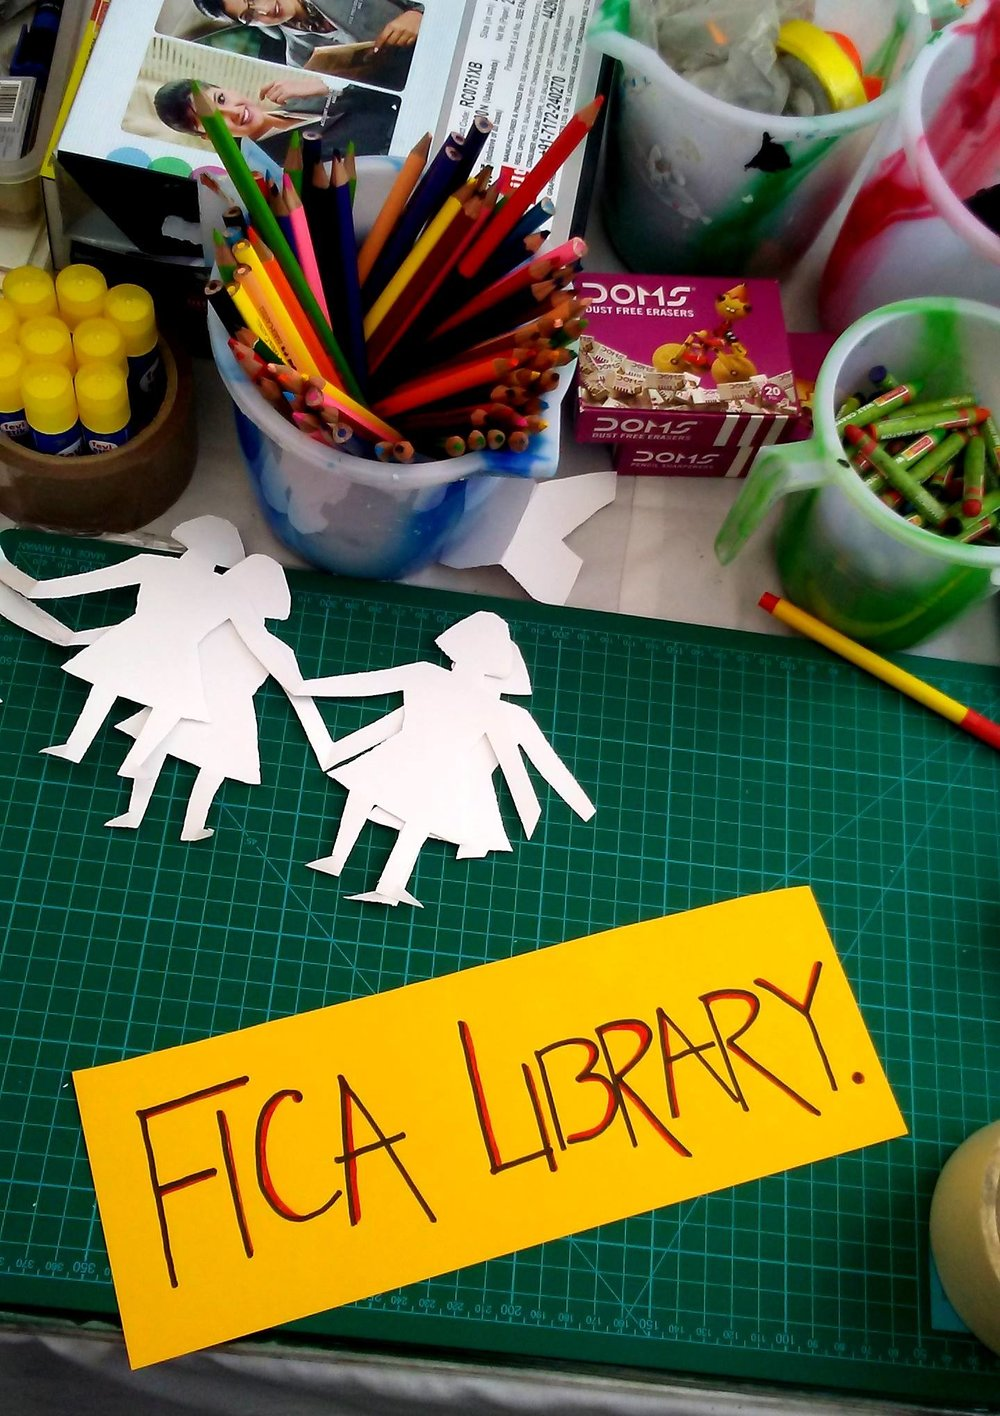 FICA MOBILE LIBRARY AT CHILDREN'S MELA | JANUARY 28, 2018